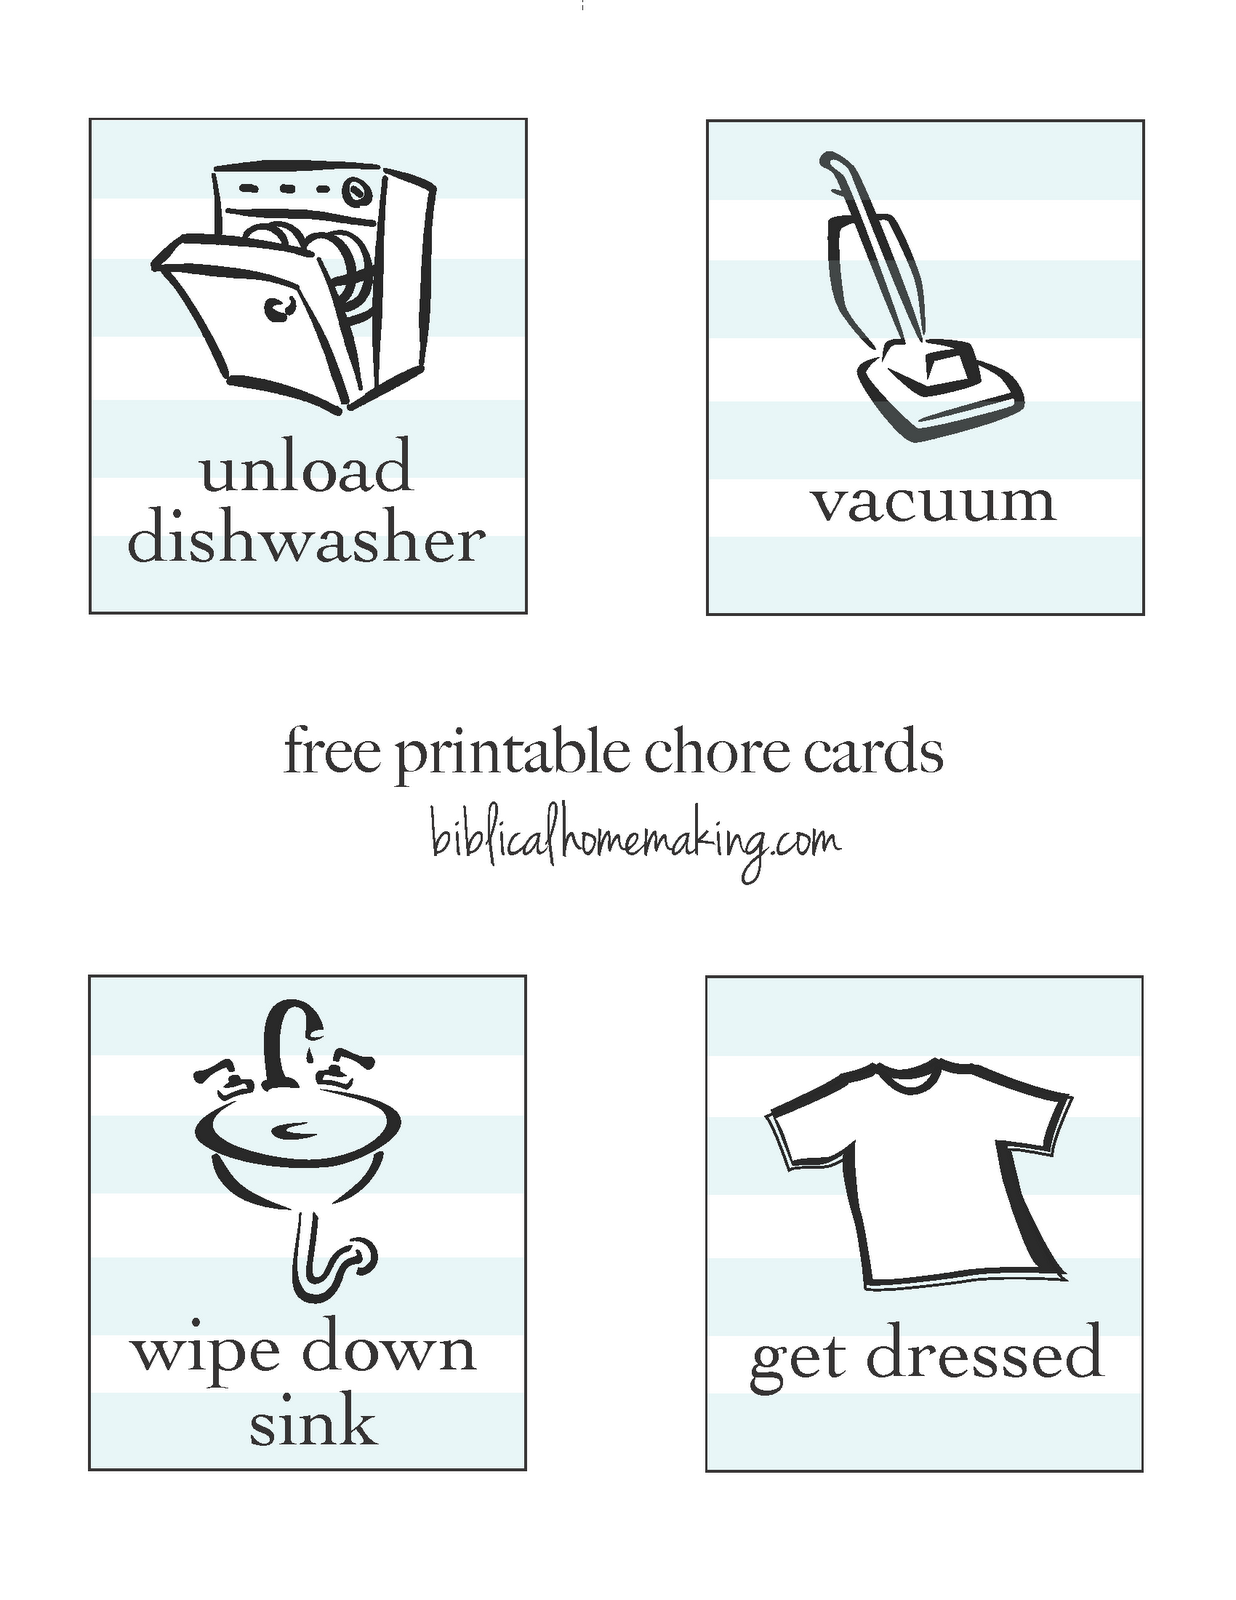 picture regarding Printable Chore Cards referred to as absolutely free printable chore playing cards guidebook Grandbabies